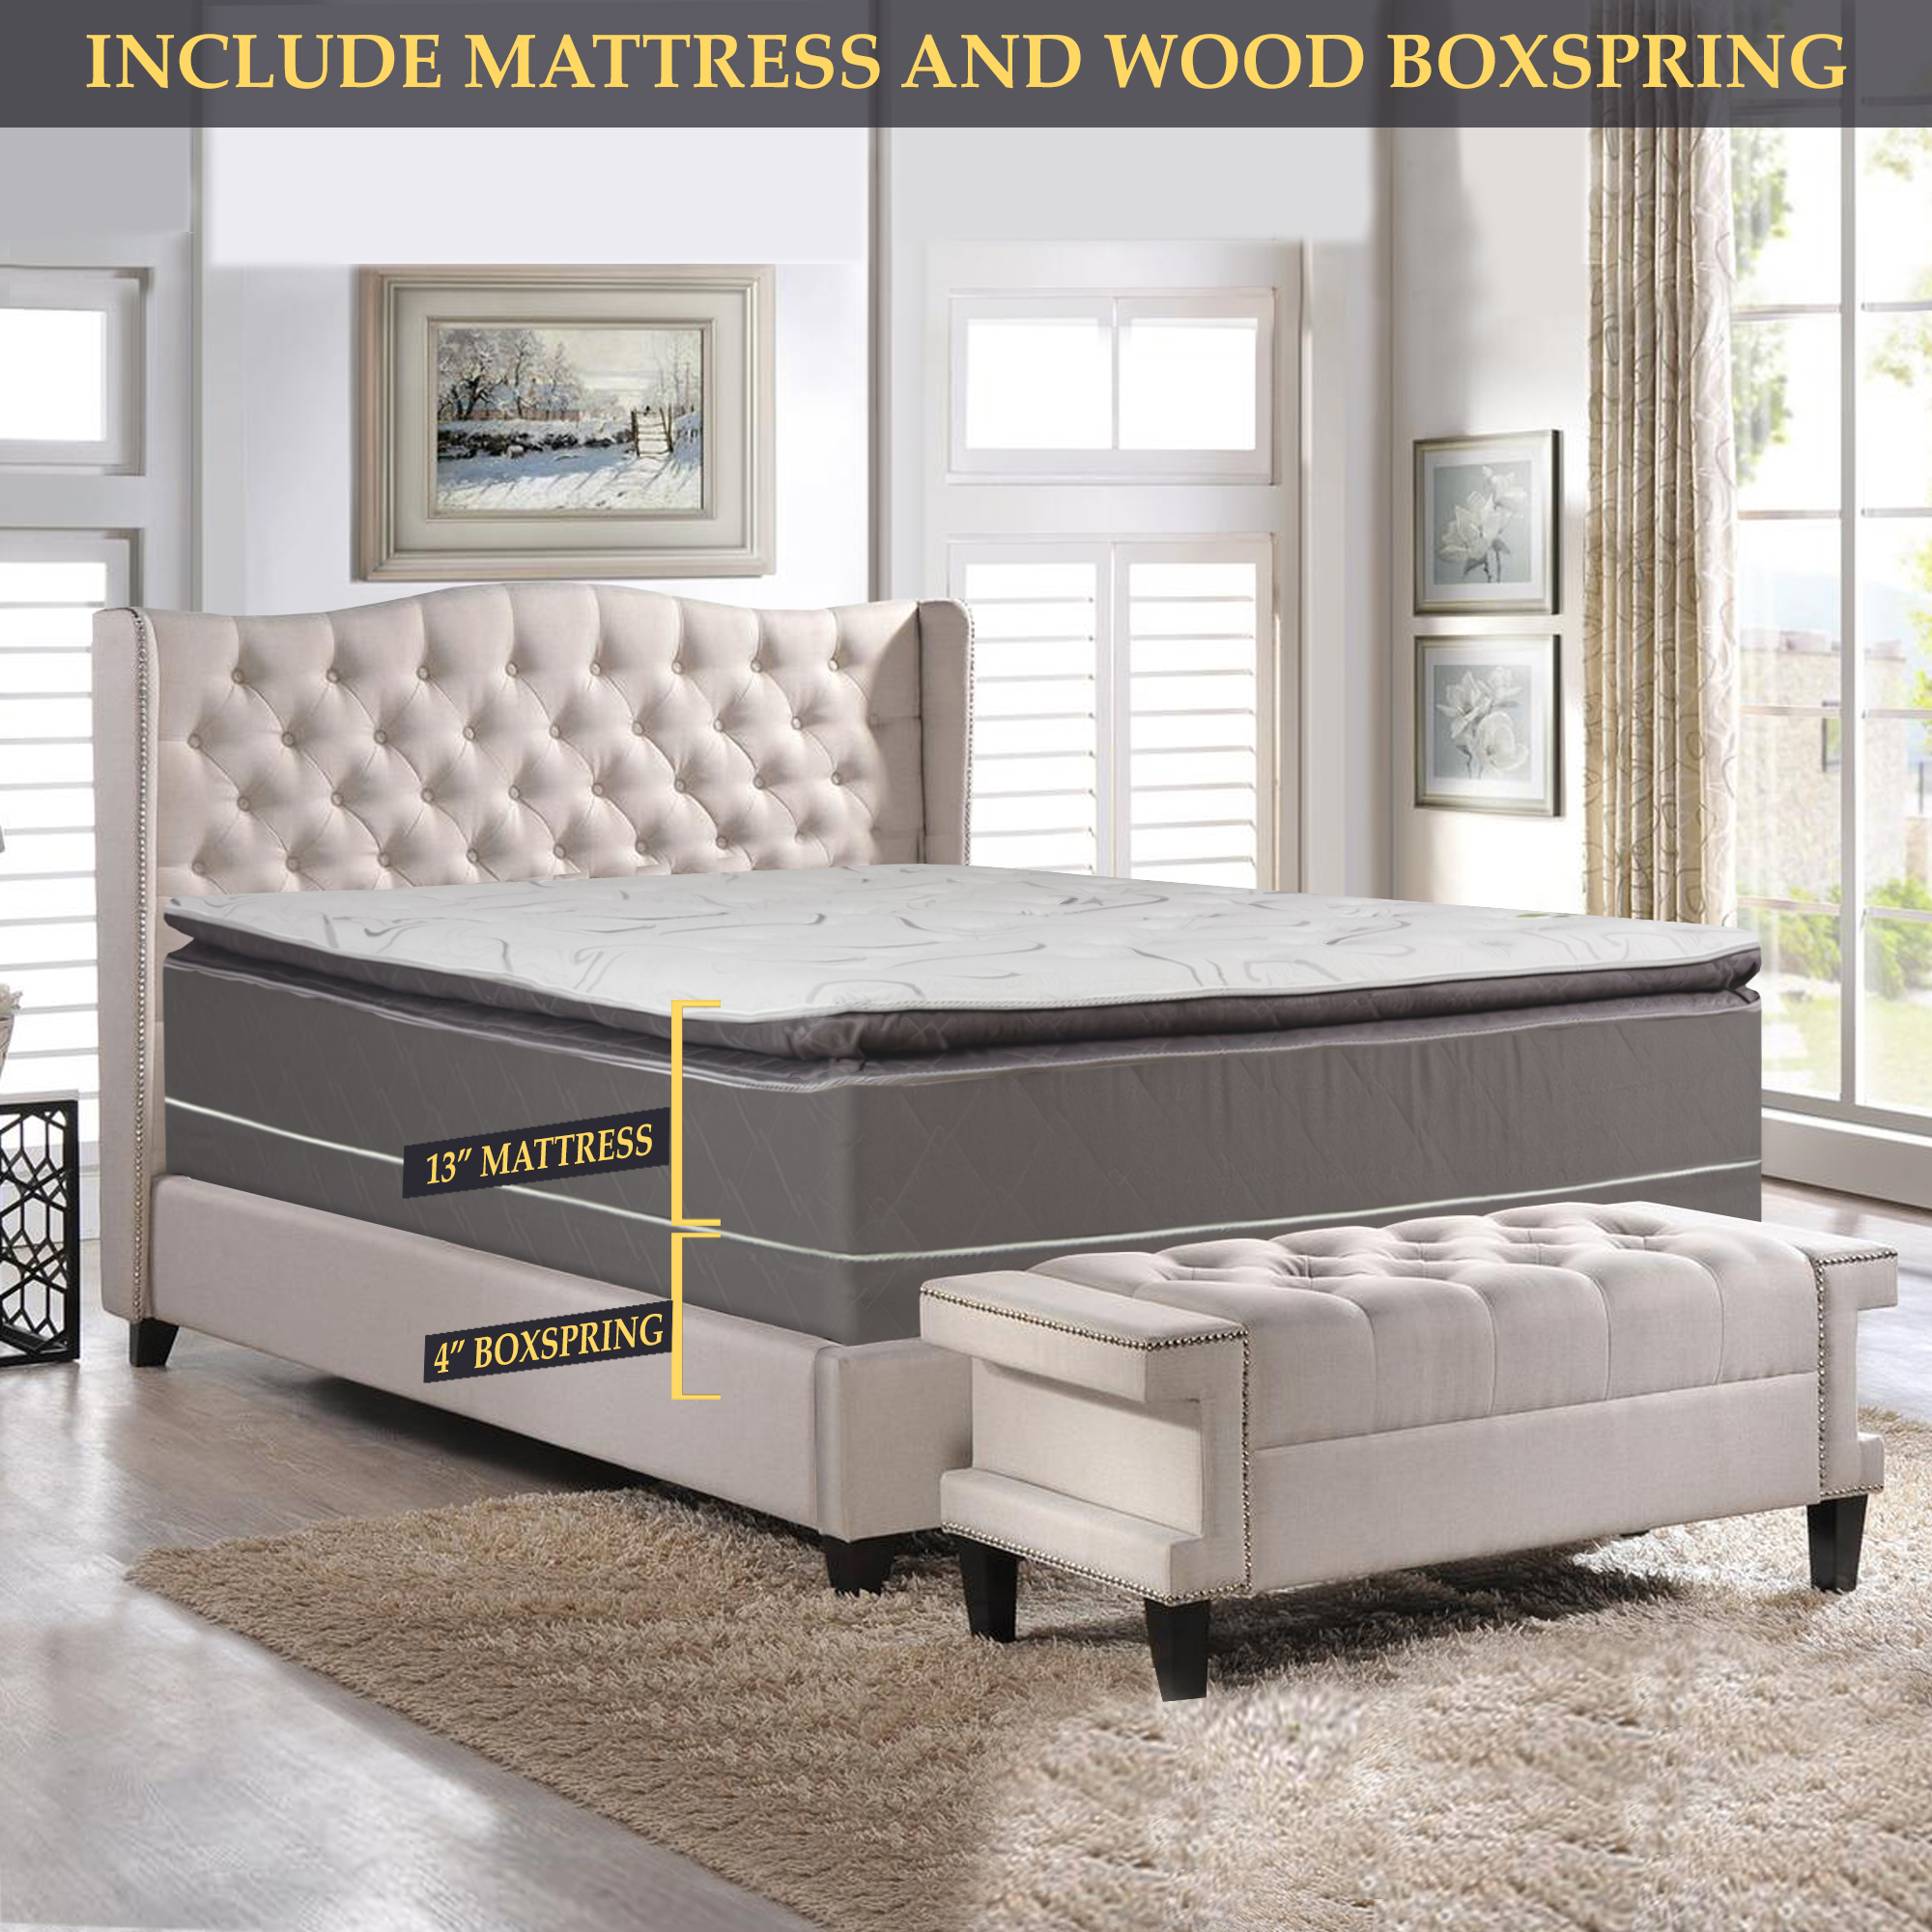 GOWTUN, 12-Inch Soft Foam Encased Hybrid Pillowtop Innerspring Mattress And 4-Inch Low Profile Fully Assembled Wood Boxspring/Foundation Set, Queen Size